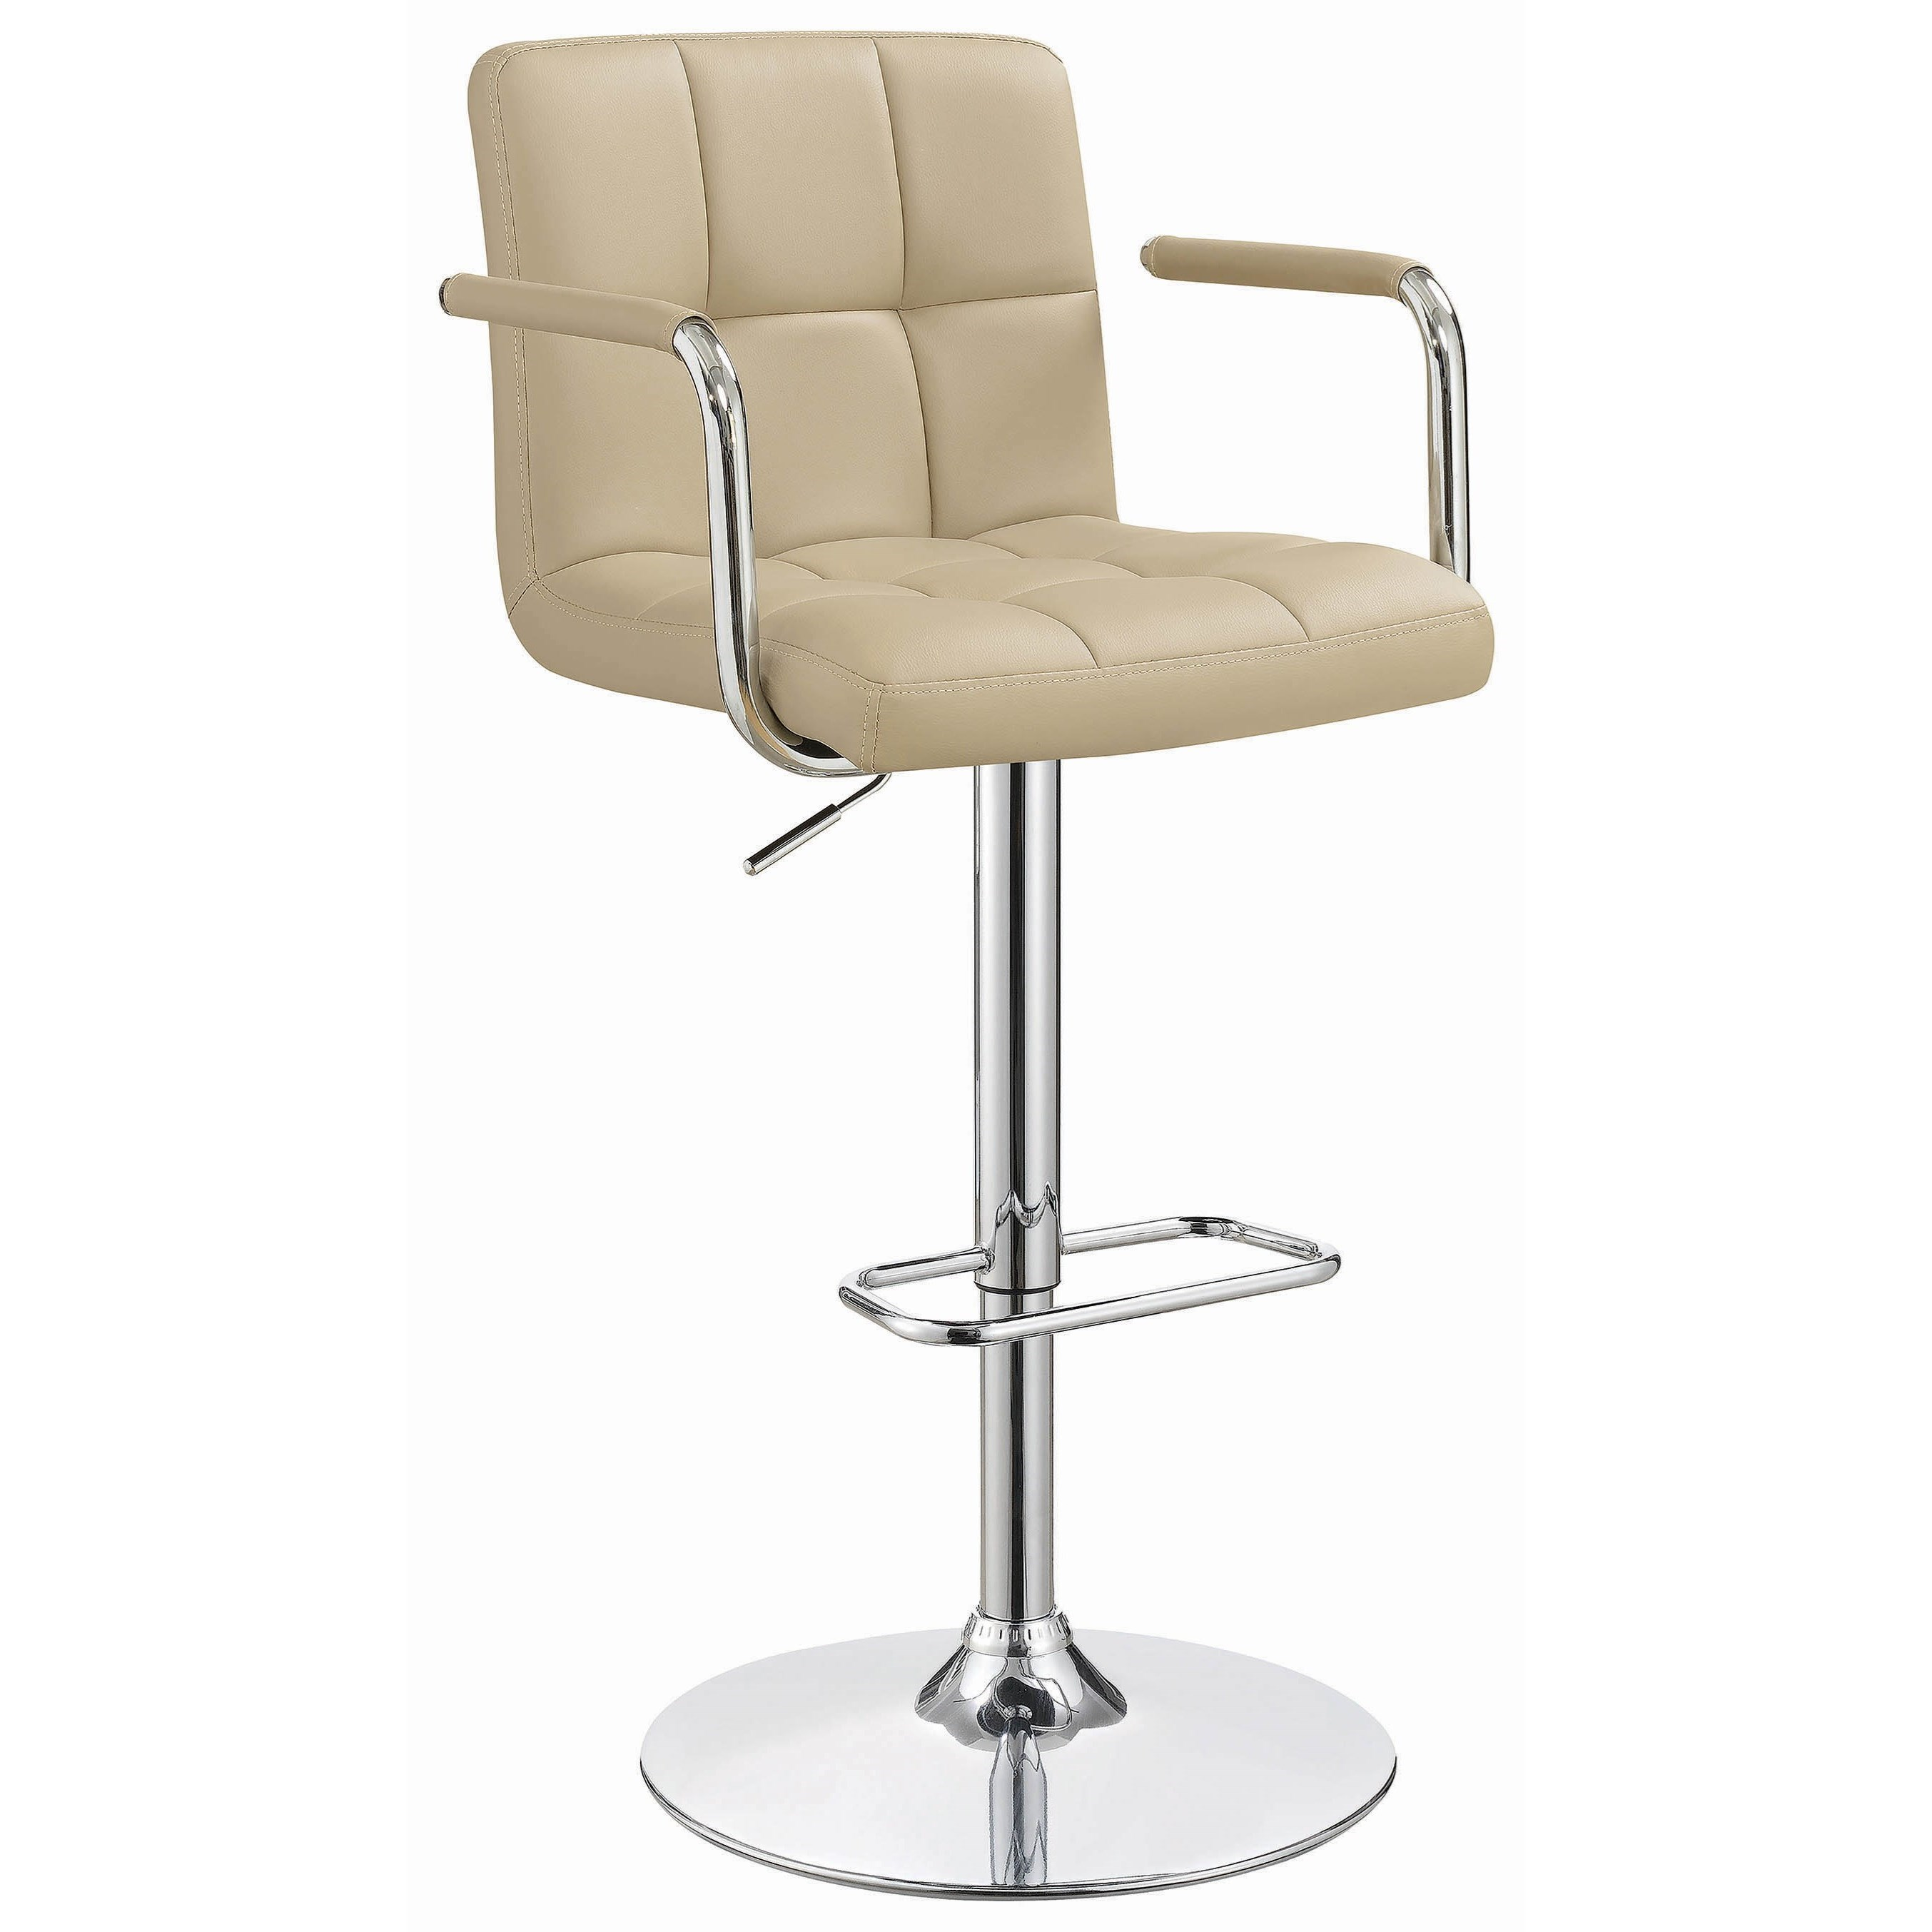 Dining Chairs and Bar Stools Adjustable Bar Stool - Beige Leatherette by Coaster at Northeast Factory Direct